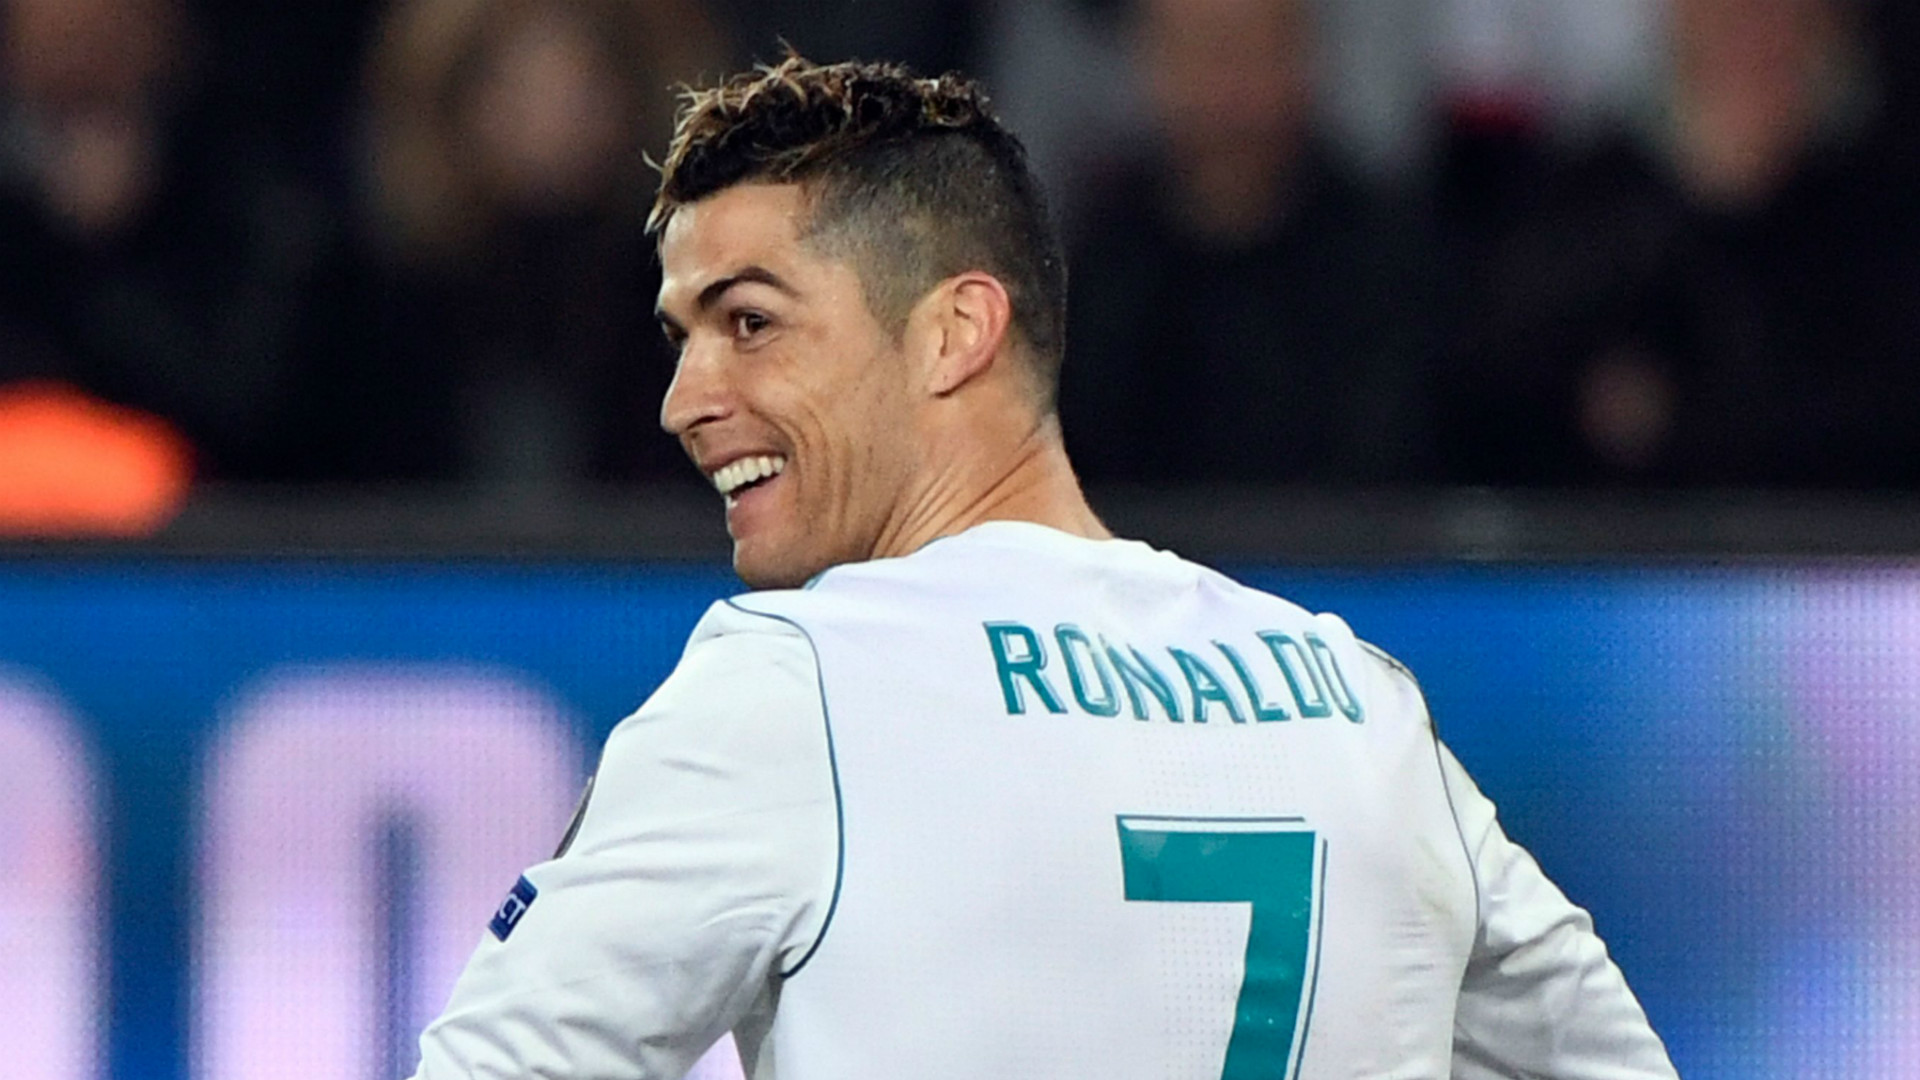 Ronaldo leads Real Madrid past PSG